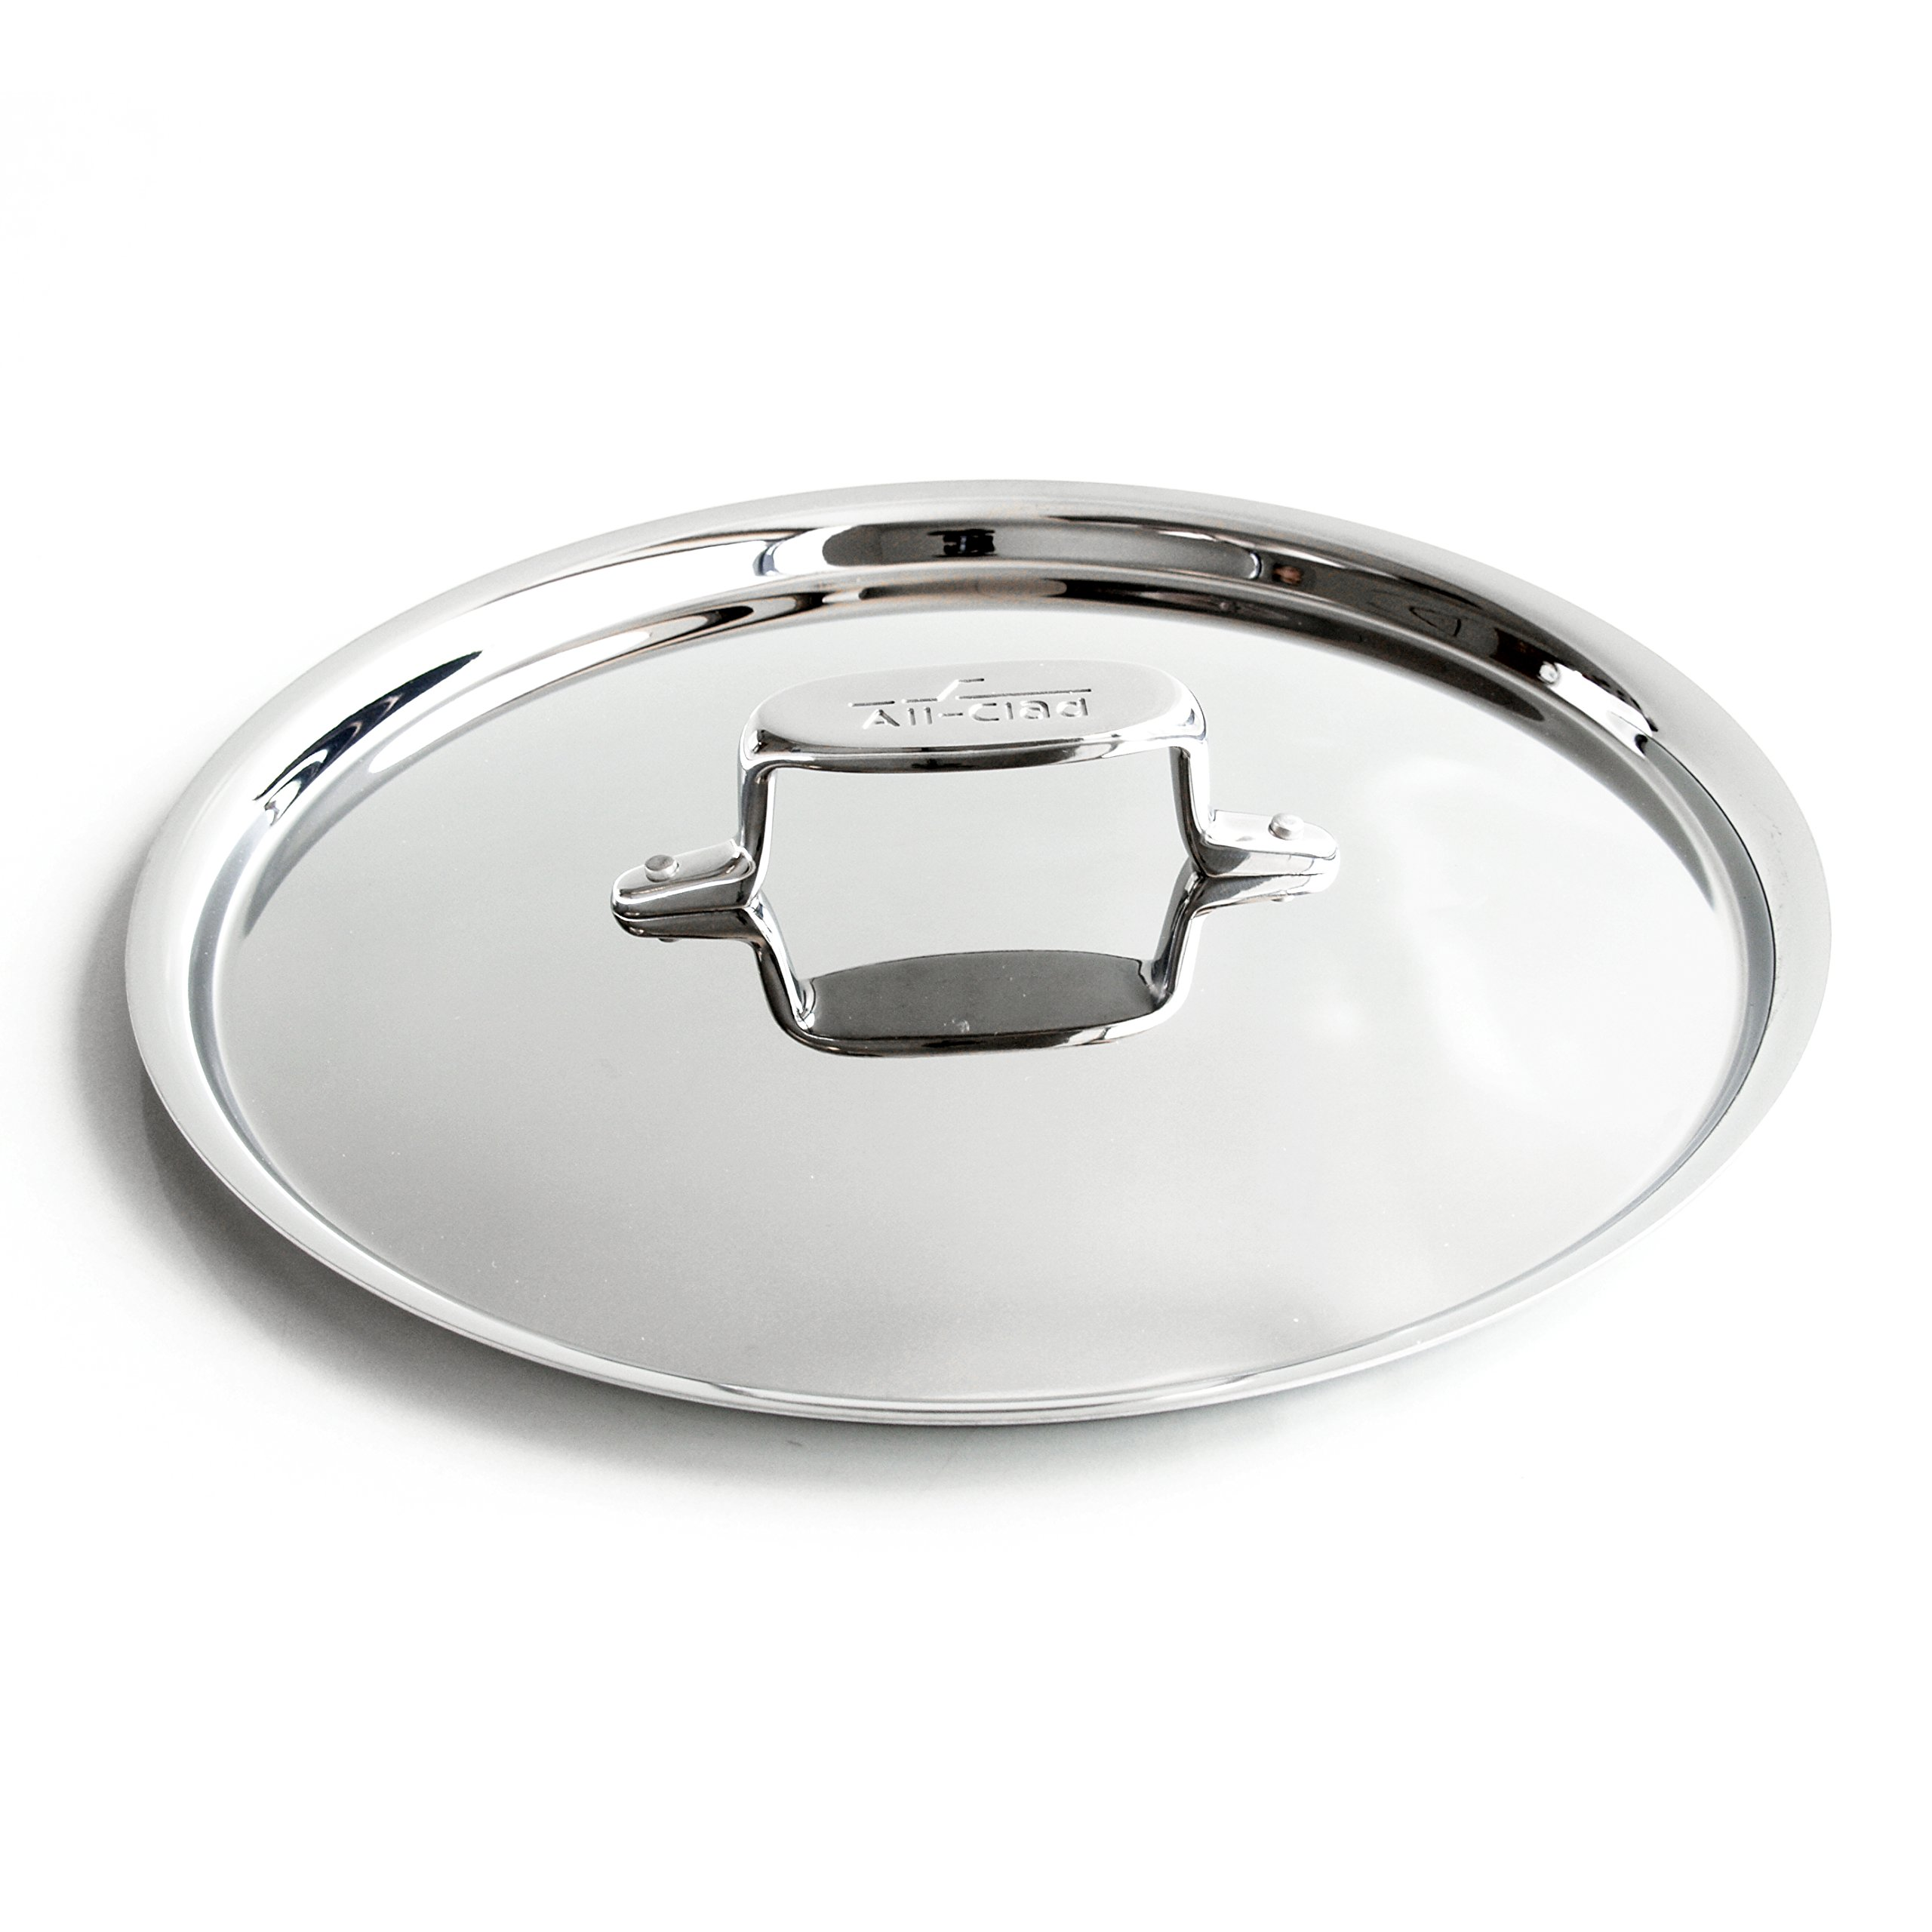 All-Clad D5 Brushed Stainless Steel Cookware Lid, 10.5 inch by All-Clad (Image #1)